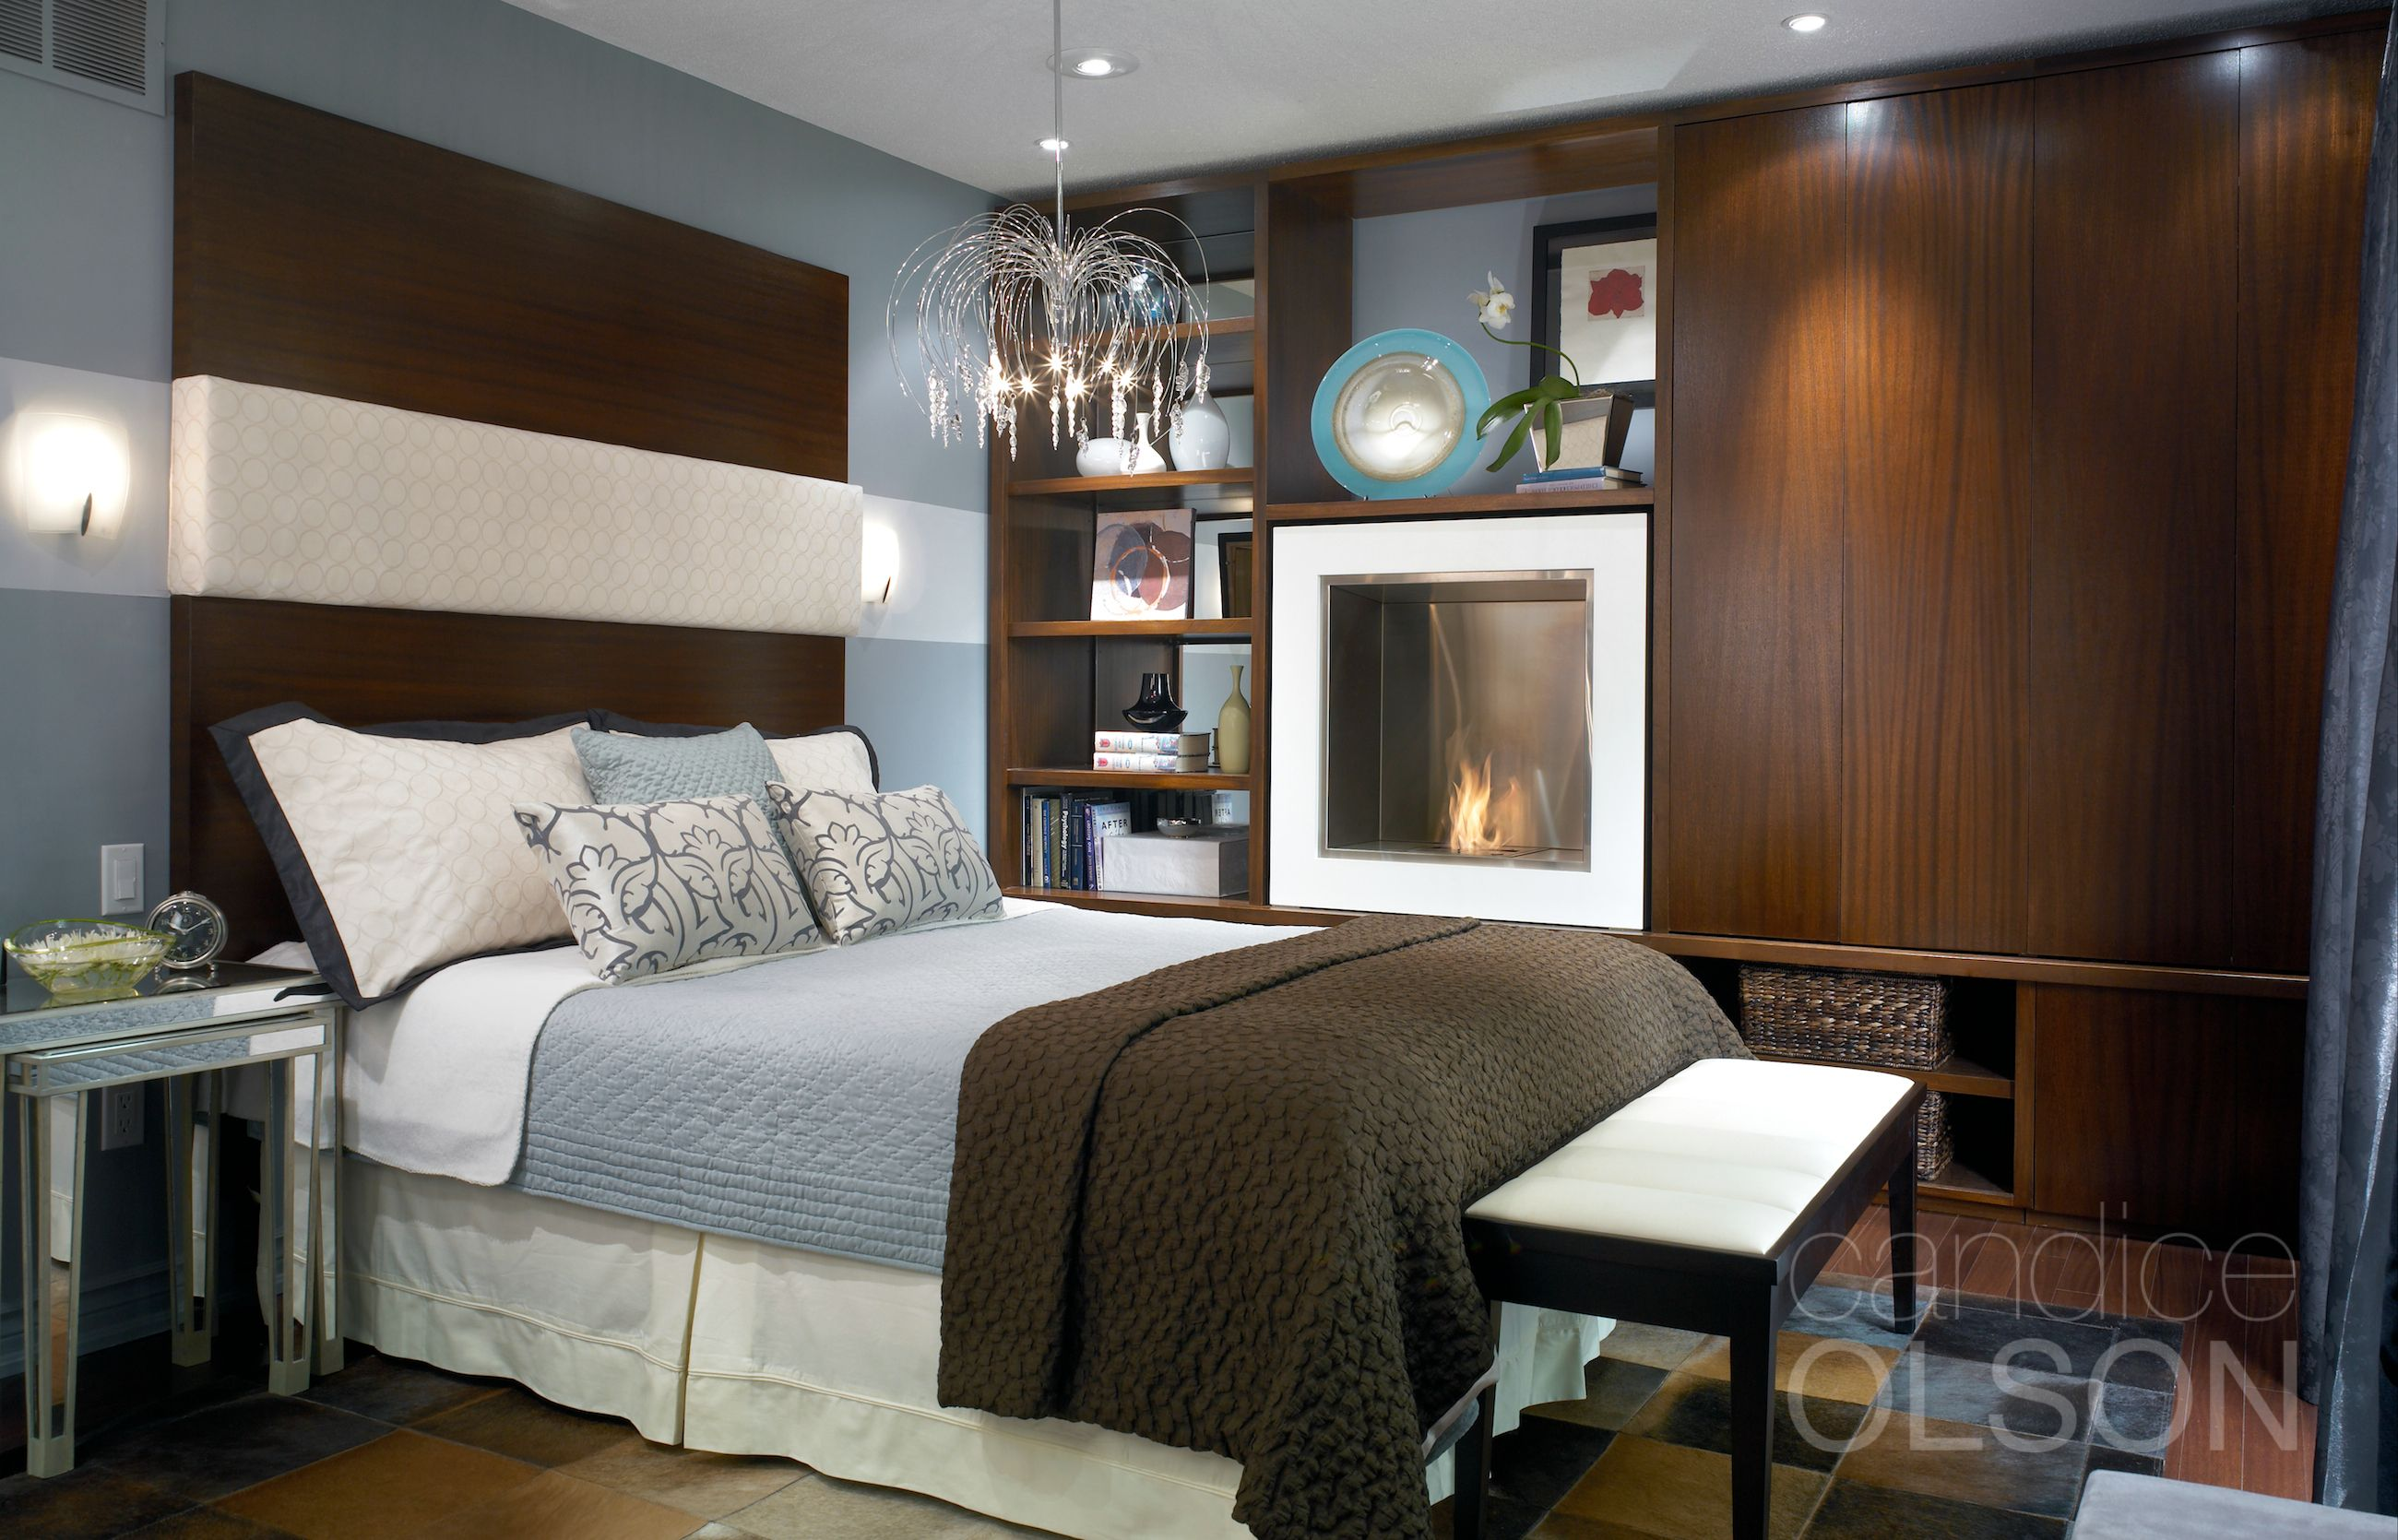 The Color Scheme Of Smoky Blue And Rich Brown Puts A Sultry Spin